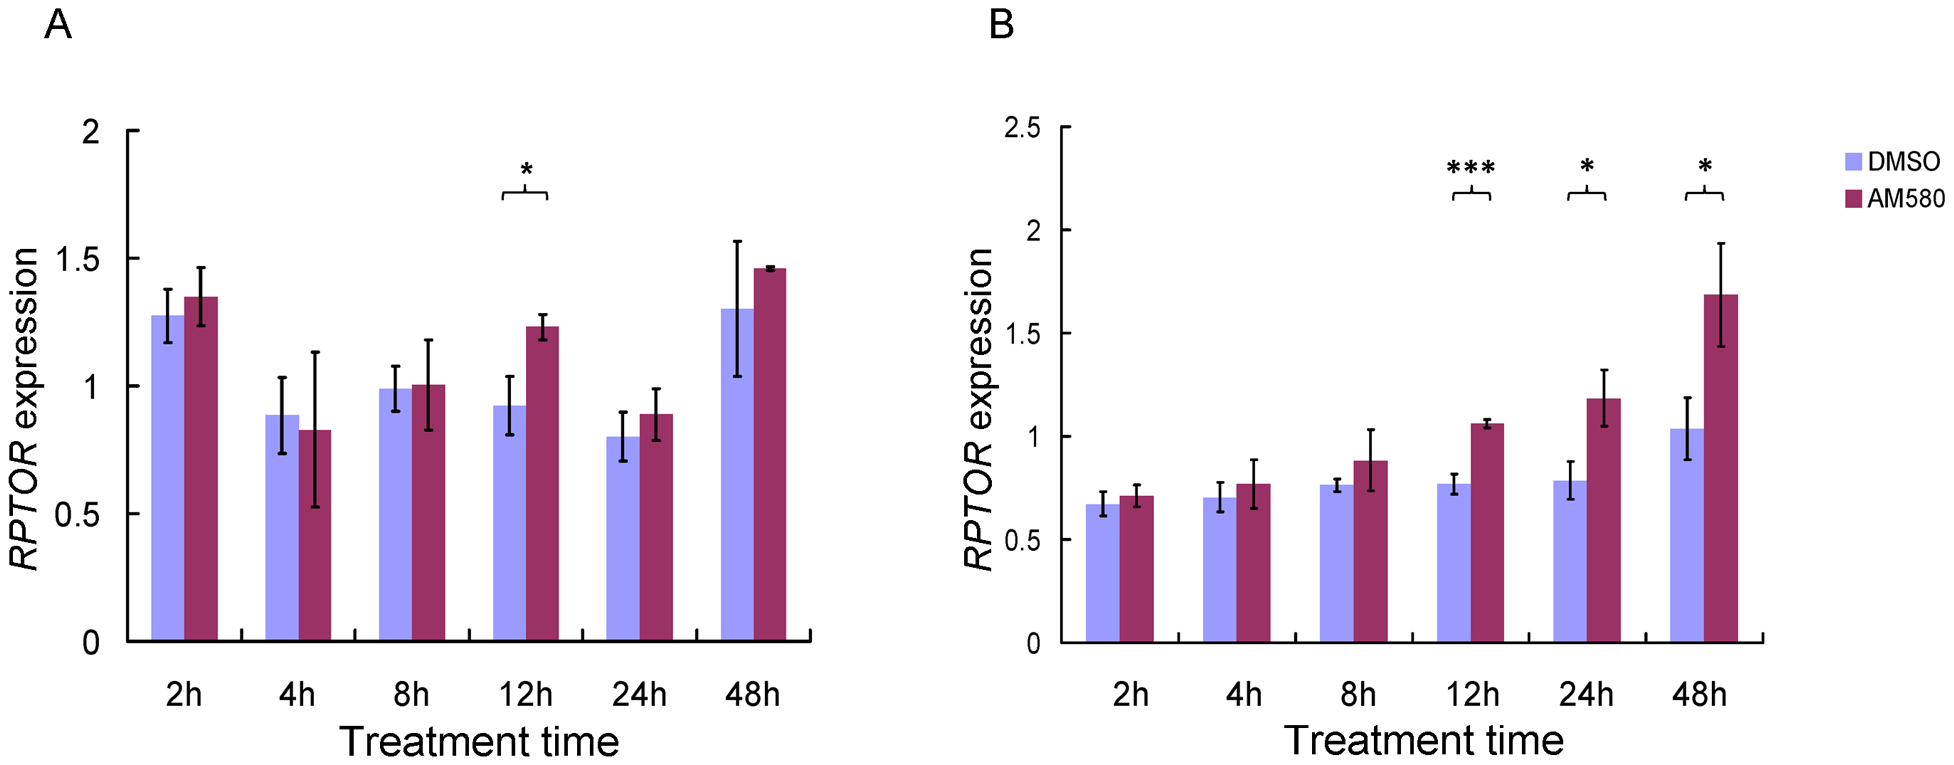 Effect of retinoids on <i>RPTOR</i> expression in HepG2 (A) and MCF-7 (B) cell lines at different treatment times.